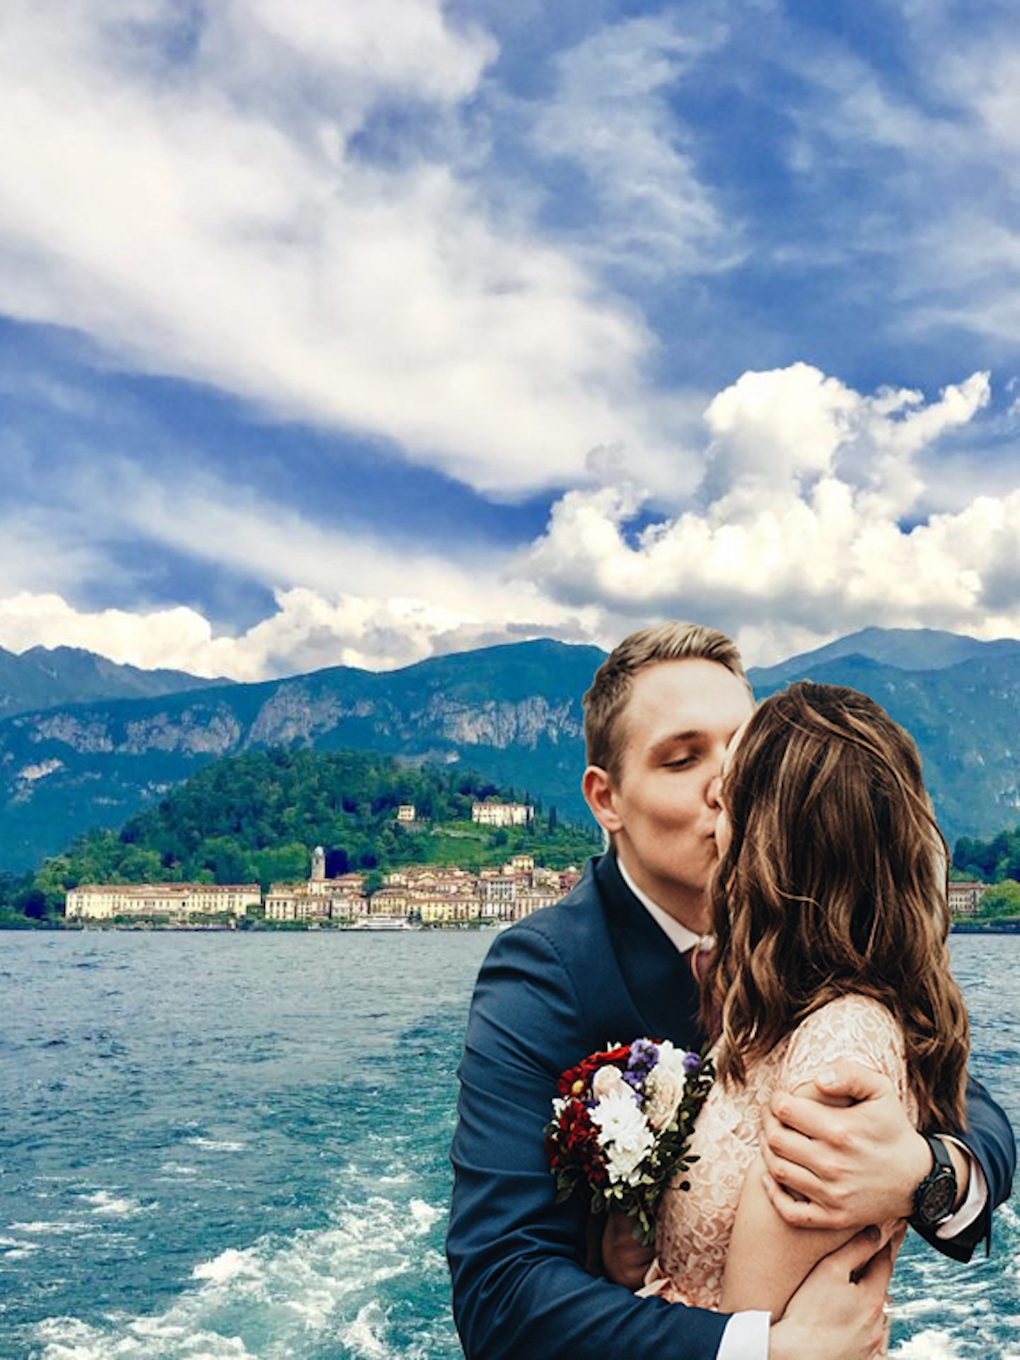 Couple kissing on Bellagio boat for their wedding in front of Bellagio